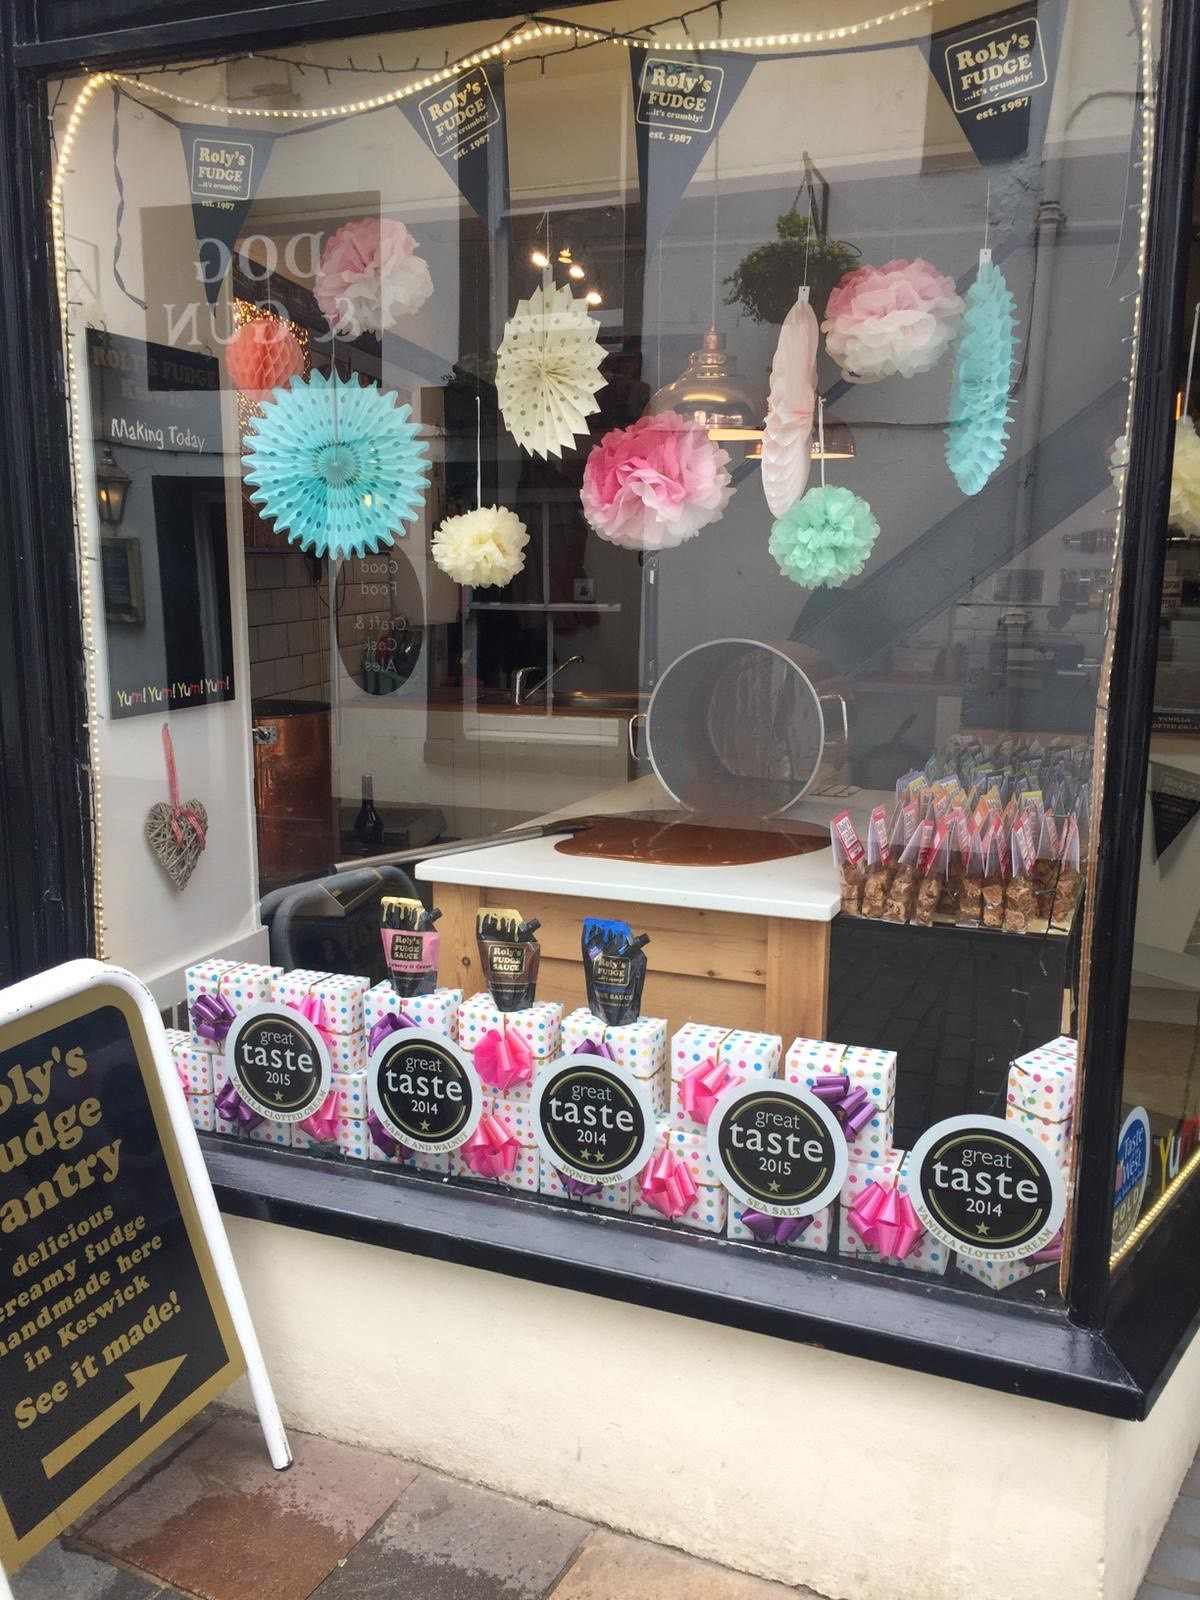 Roly's Fudge Keswick   Come and see fresh fudge being made daily in our wonderful copper pans right in front of your eyes. You'll be blown away by the enticing smell and once you've tried one of our samples, you will be hooked! We have lots of lovely gift wrapped fudge as well as loose fudge to choose from in more flavours than you can manage to eat.  Lake Road, Keswick, CA12 5BS